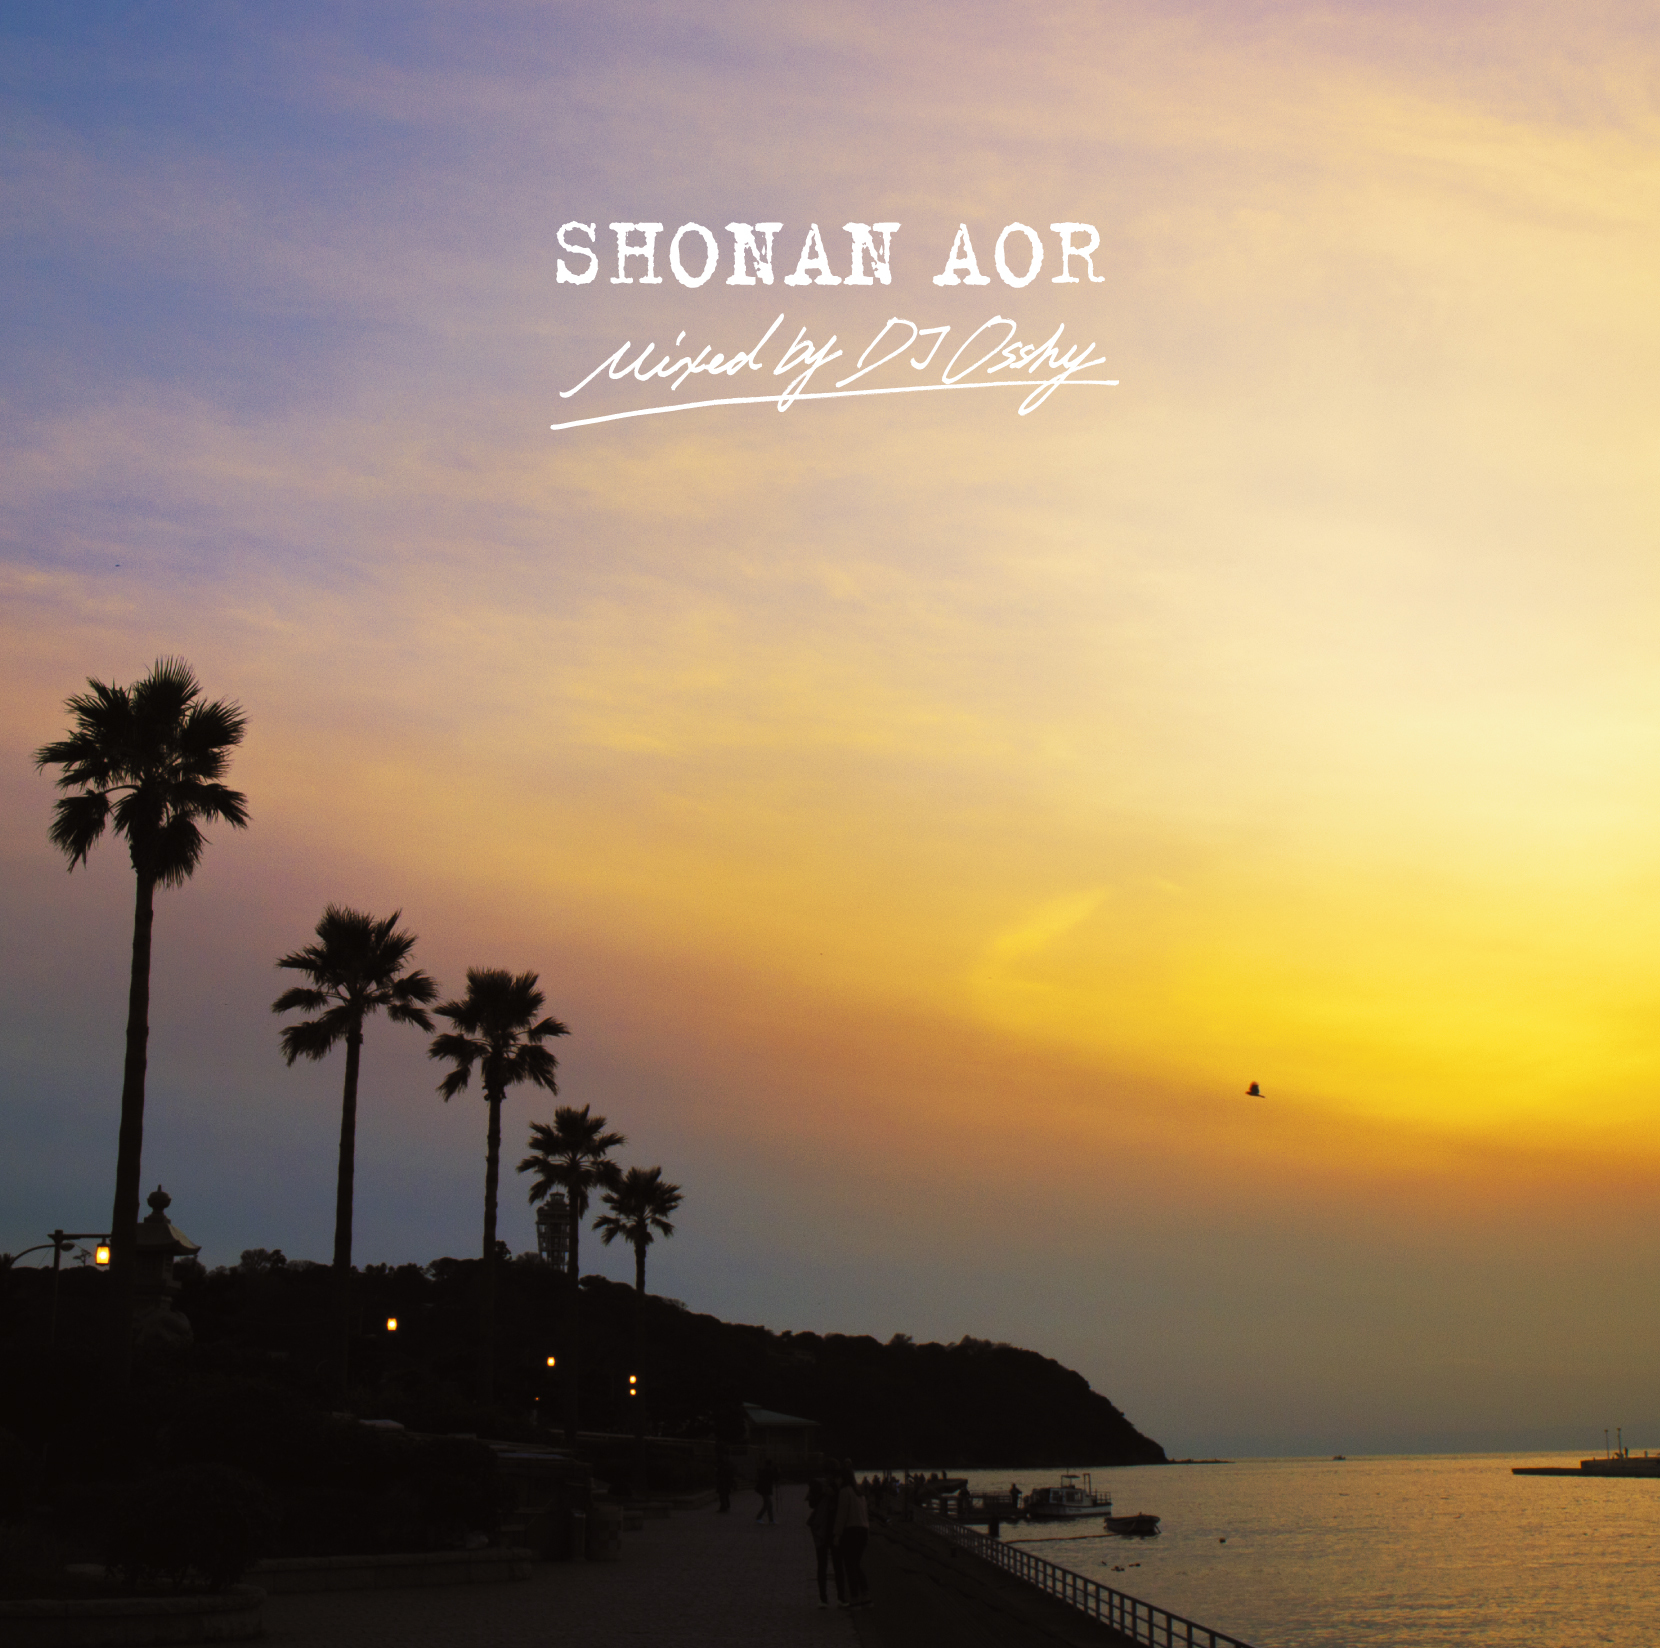 SHONAN AOR mixed by DJ OSSHY